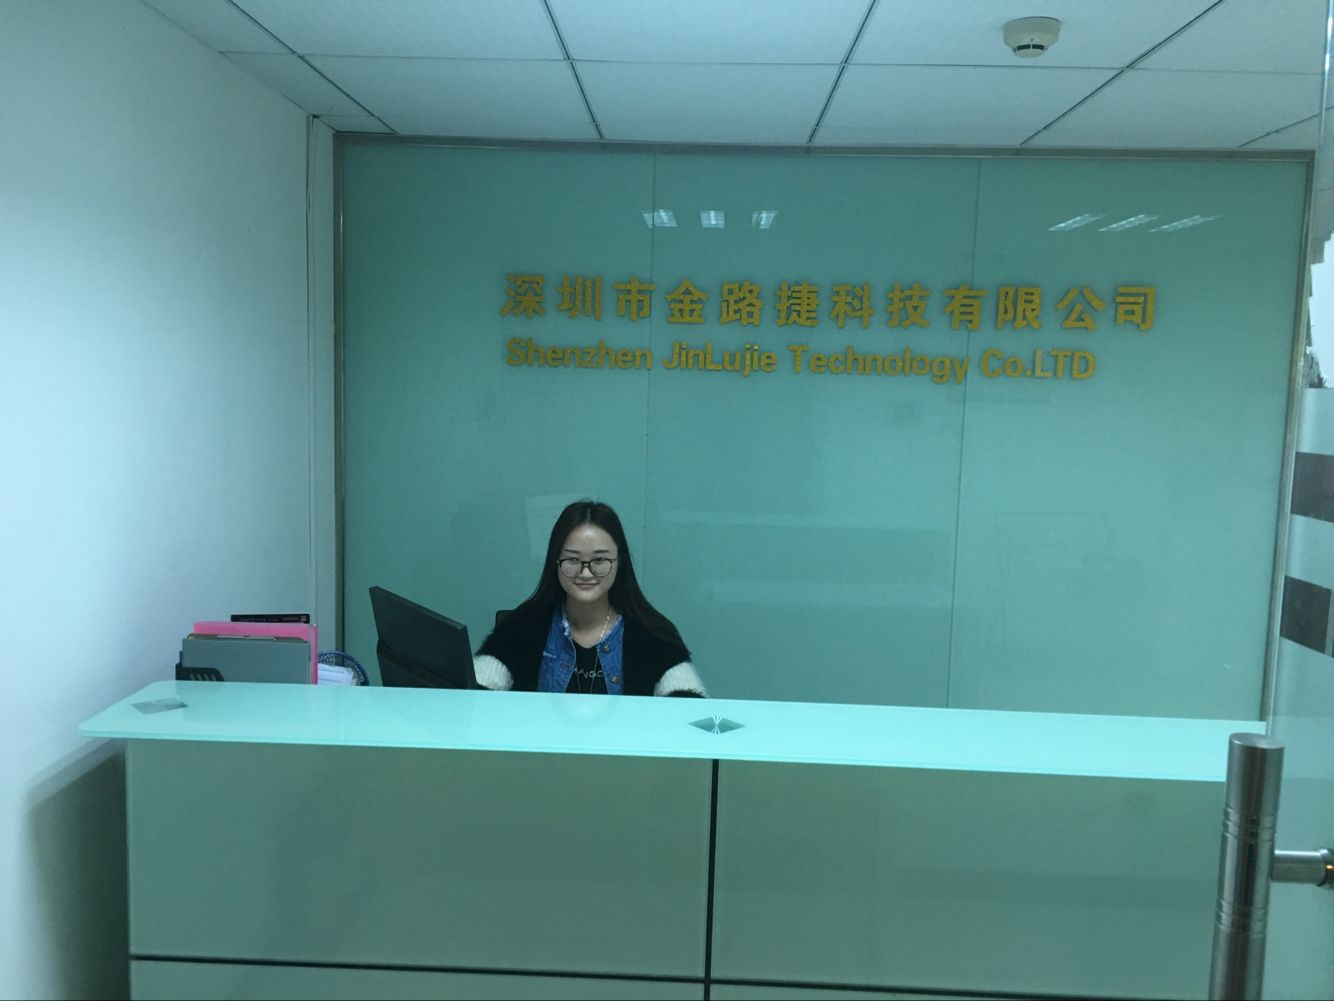 Shenzhen Jinlujie Technology CO.LTD